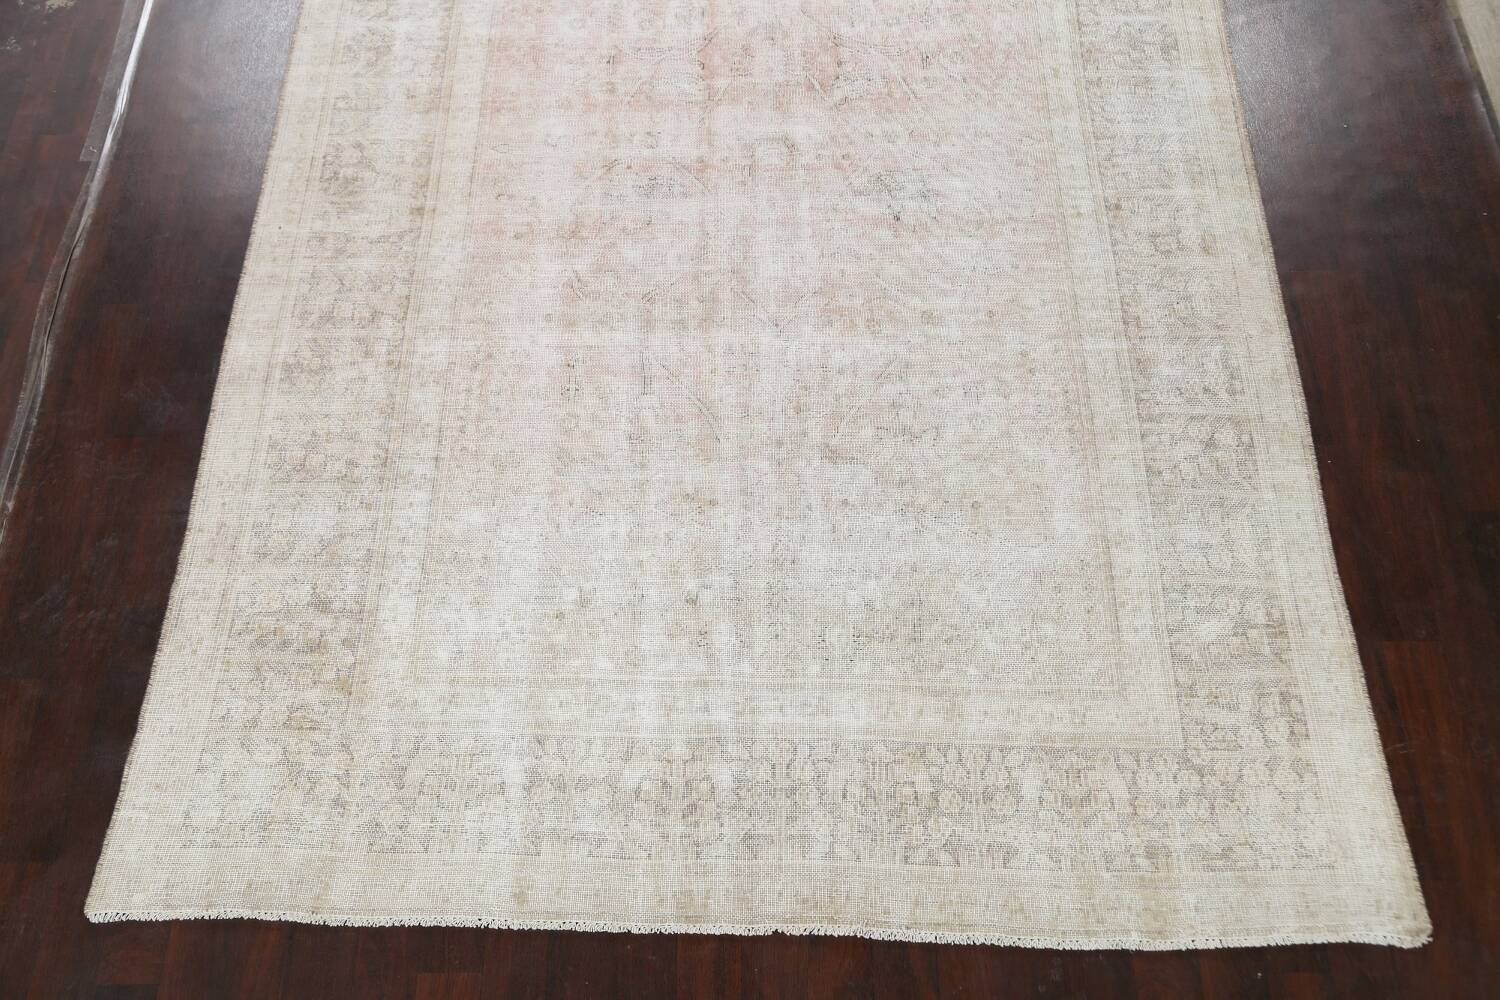 Antique Muted Distressed Tabriz Persian Area Rug 9x11 image 8